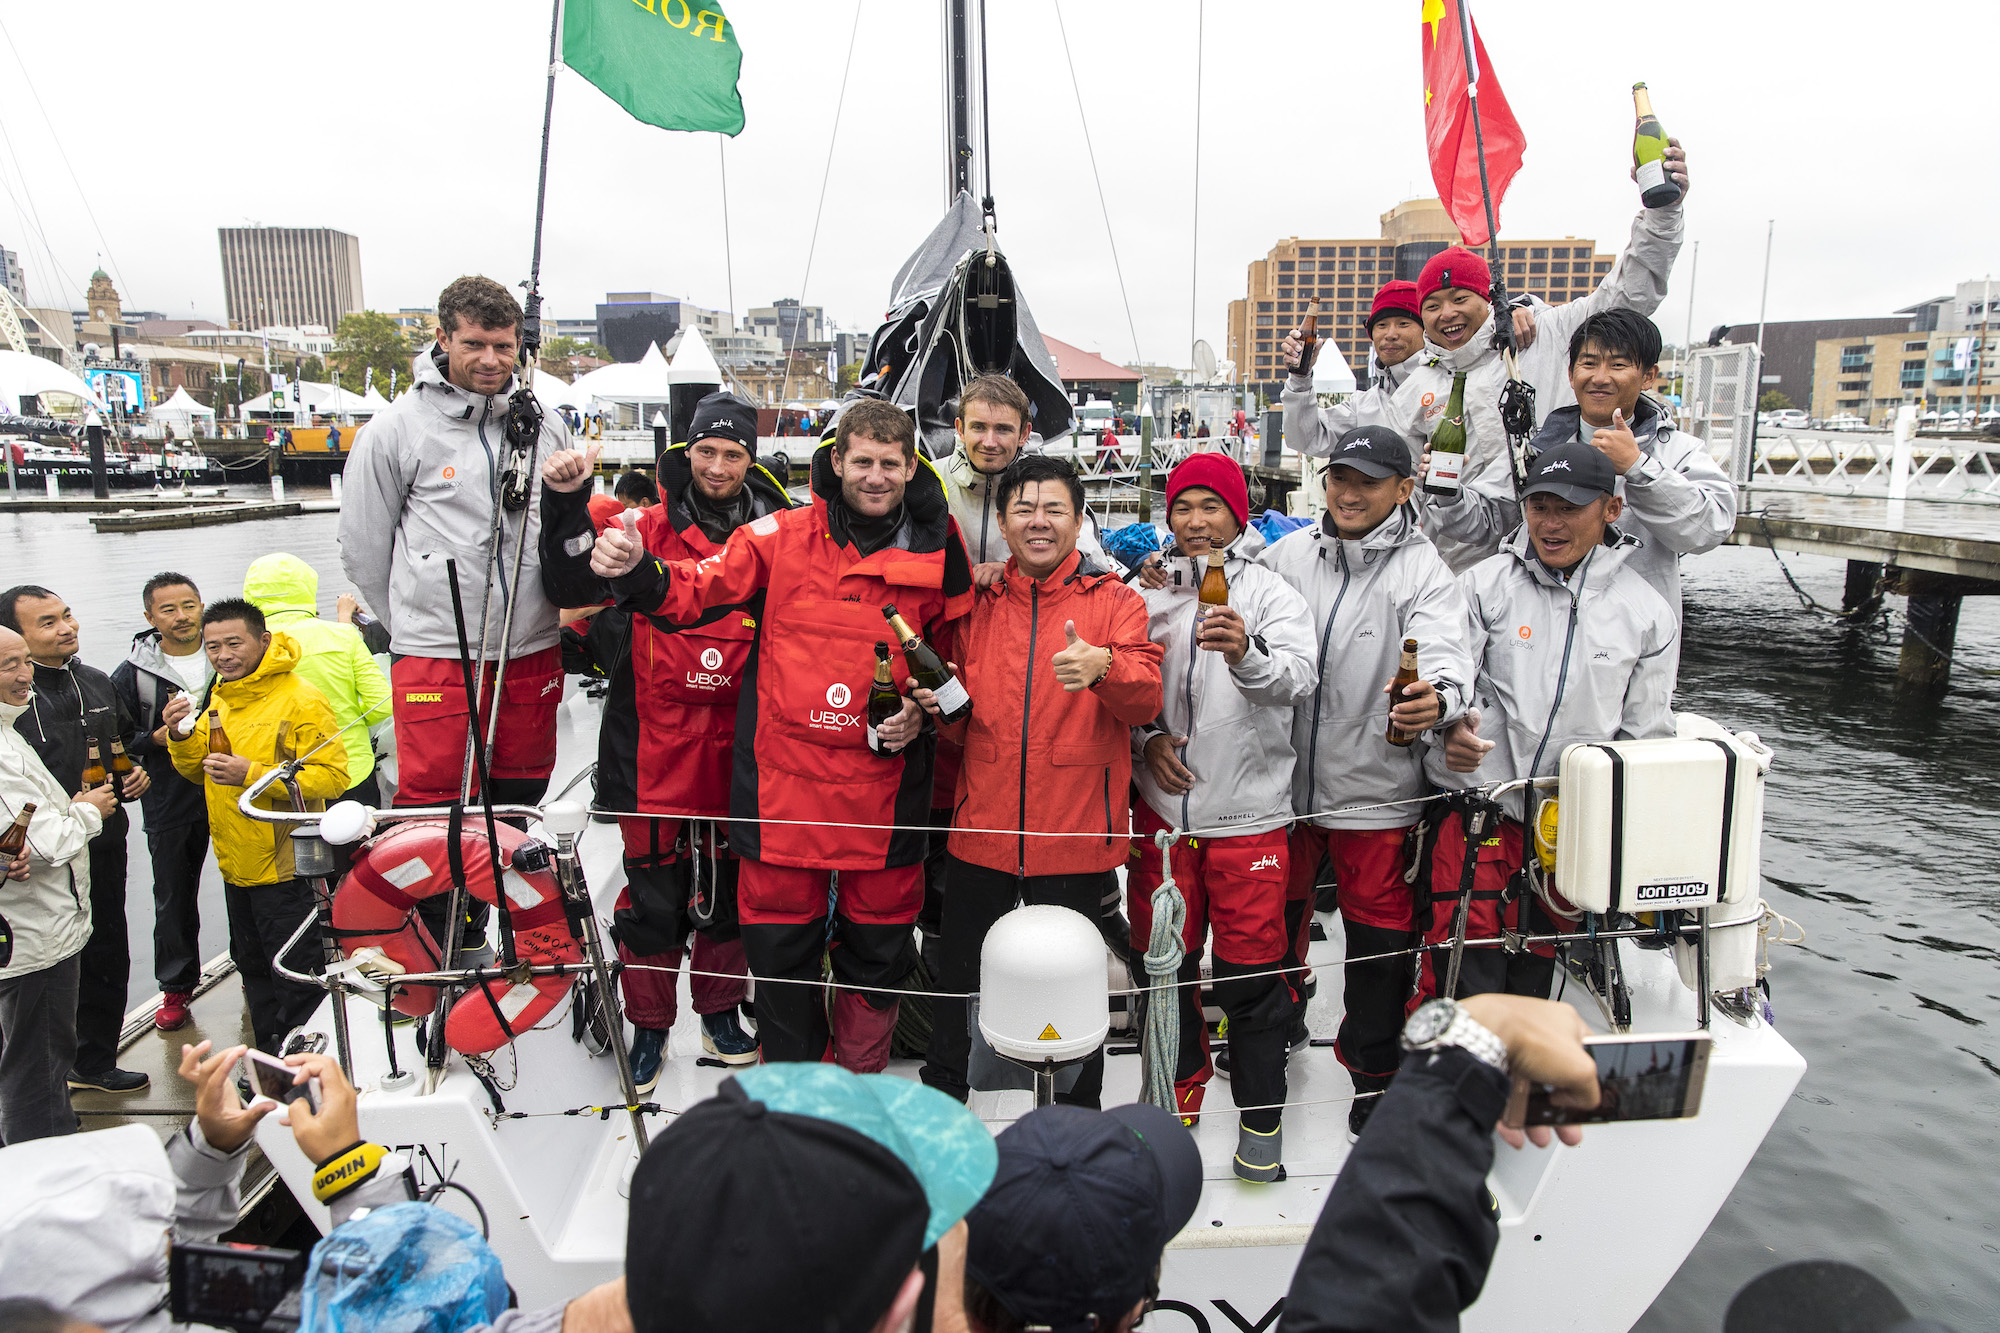 Blessed by the weather, UBOX storms to Hobart to claim third place overall on handicap